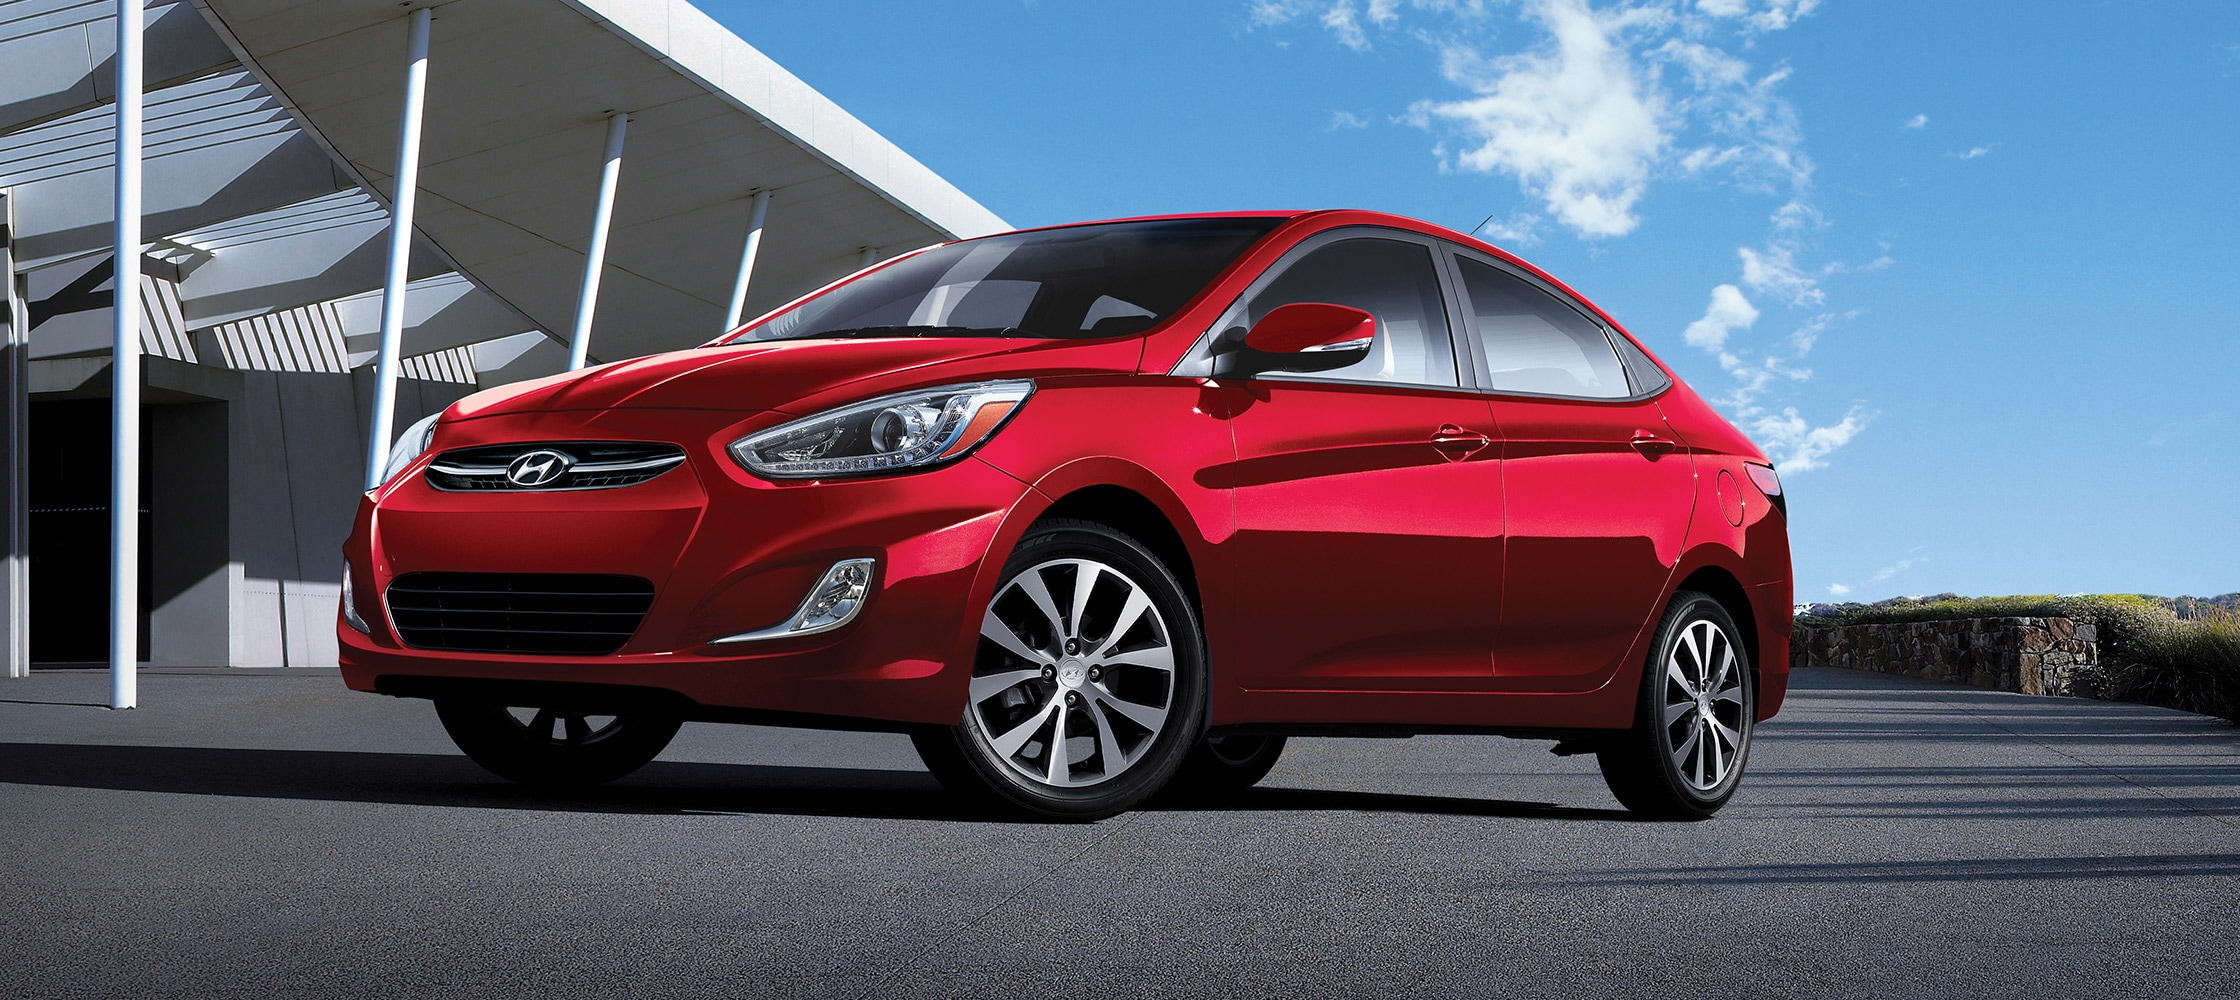 Exterior side picture of red Hyundai Accent Sedan 2017 in daylight